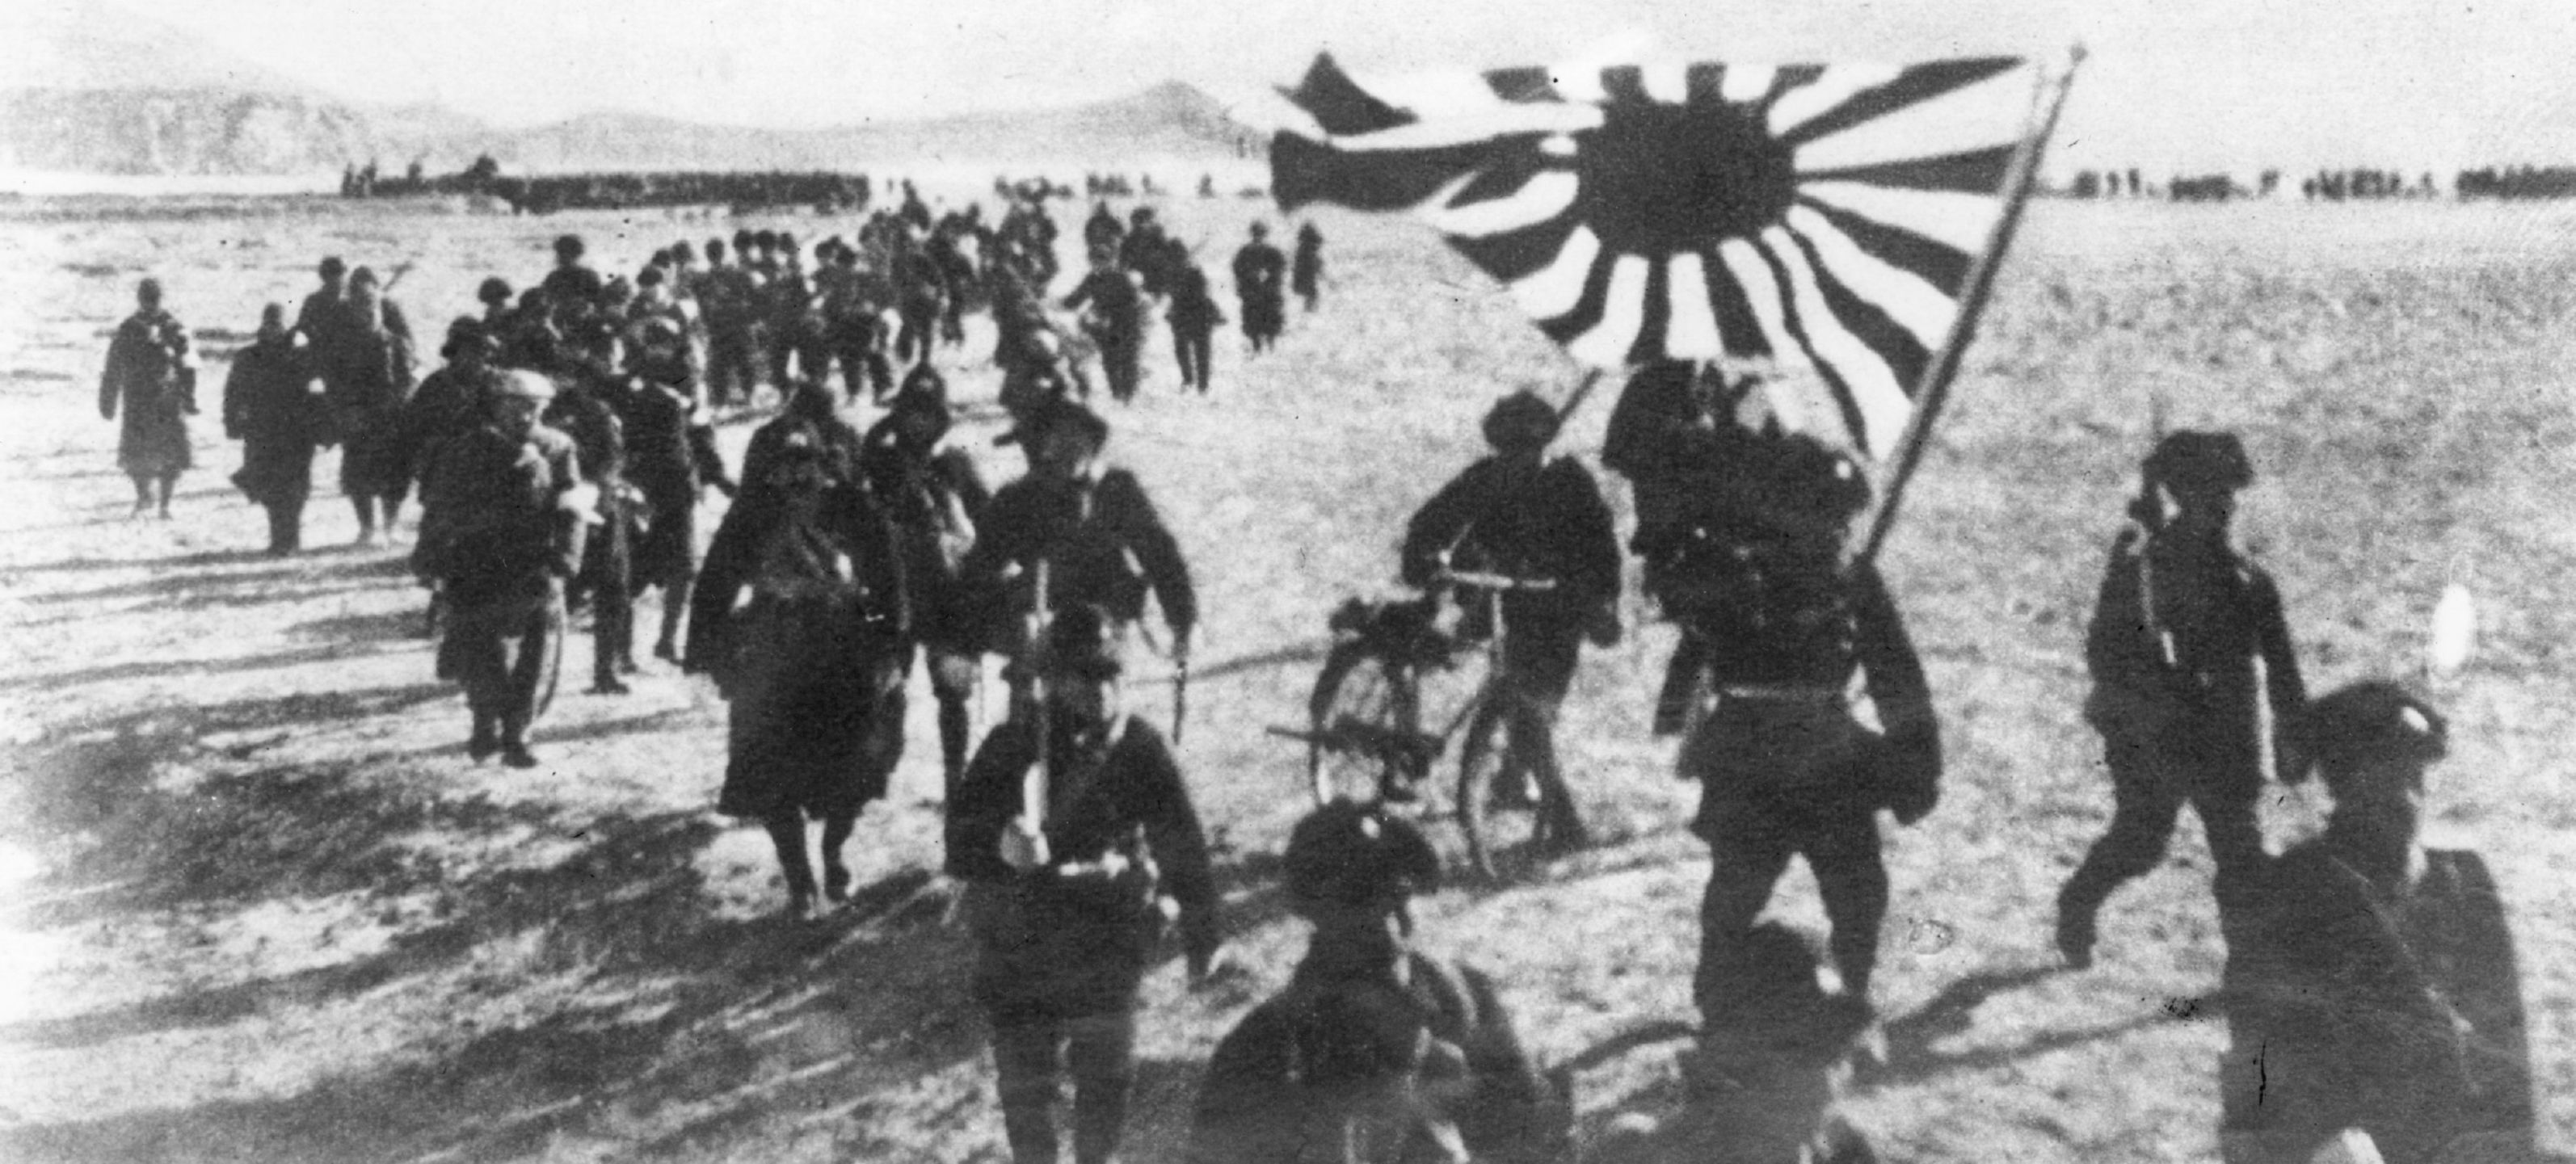 japan was better prepared for world war ii By the time of world war ii, the annual output of 65 million barrels annually was more than enough to make japan self-sufficent and fuel not only japanese industry, but all of the increased demands that would be rquired for a naval war in the pacfic.